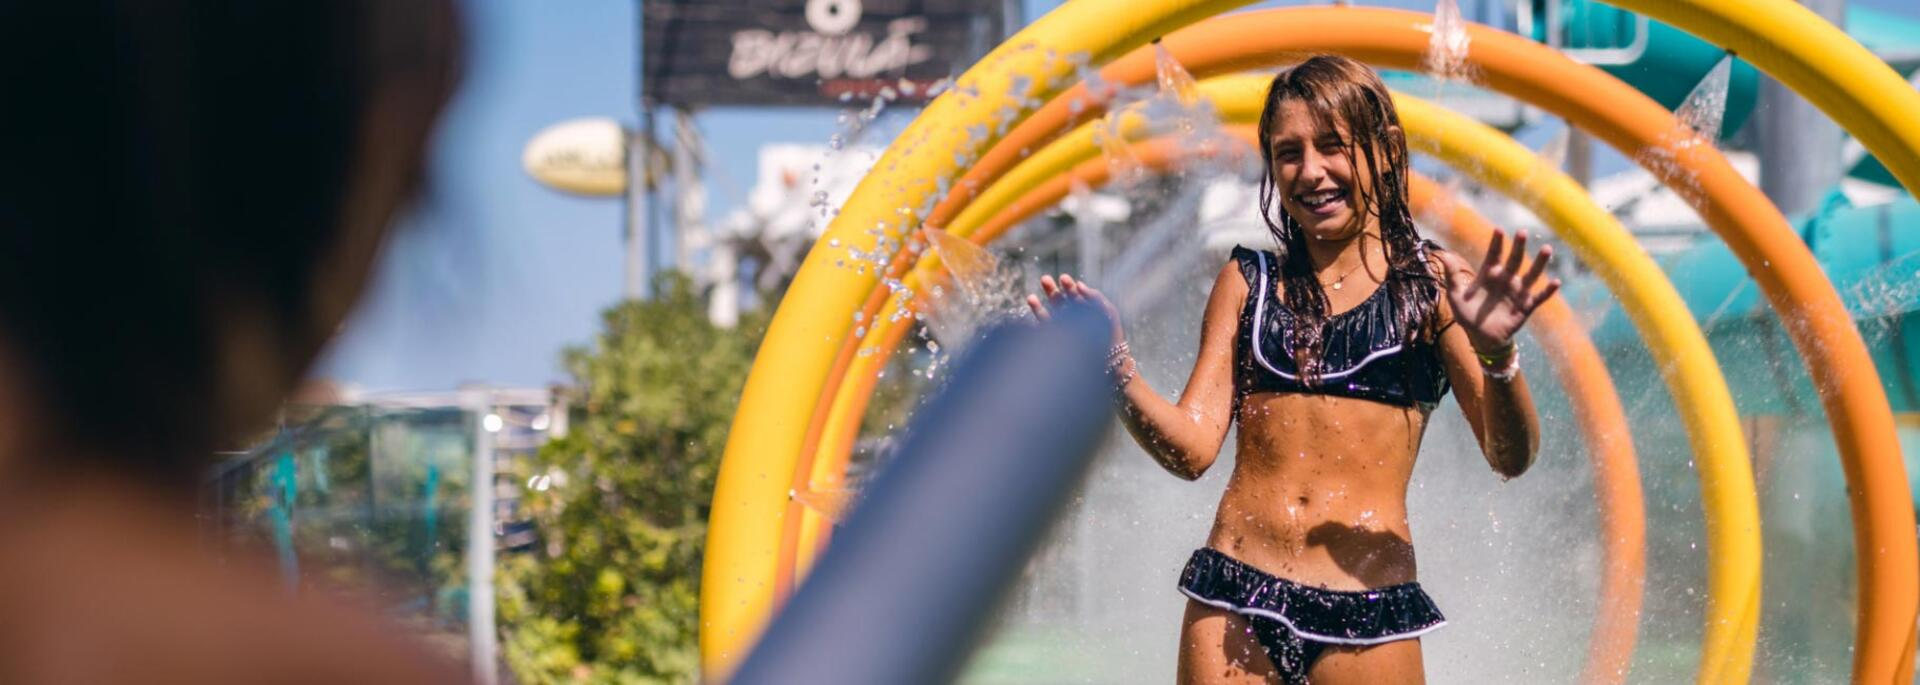 cattolicafamilyresort fr info-contacts 002